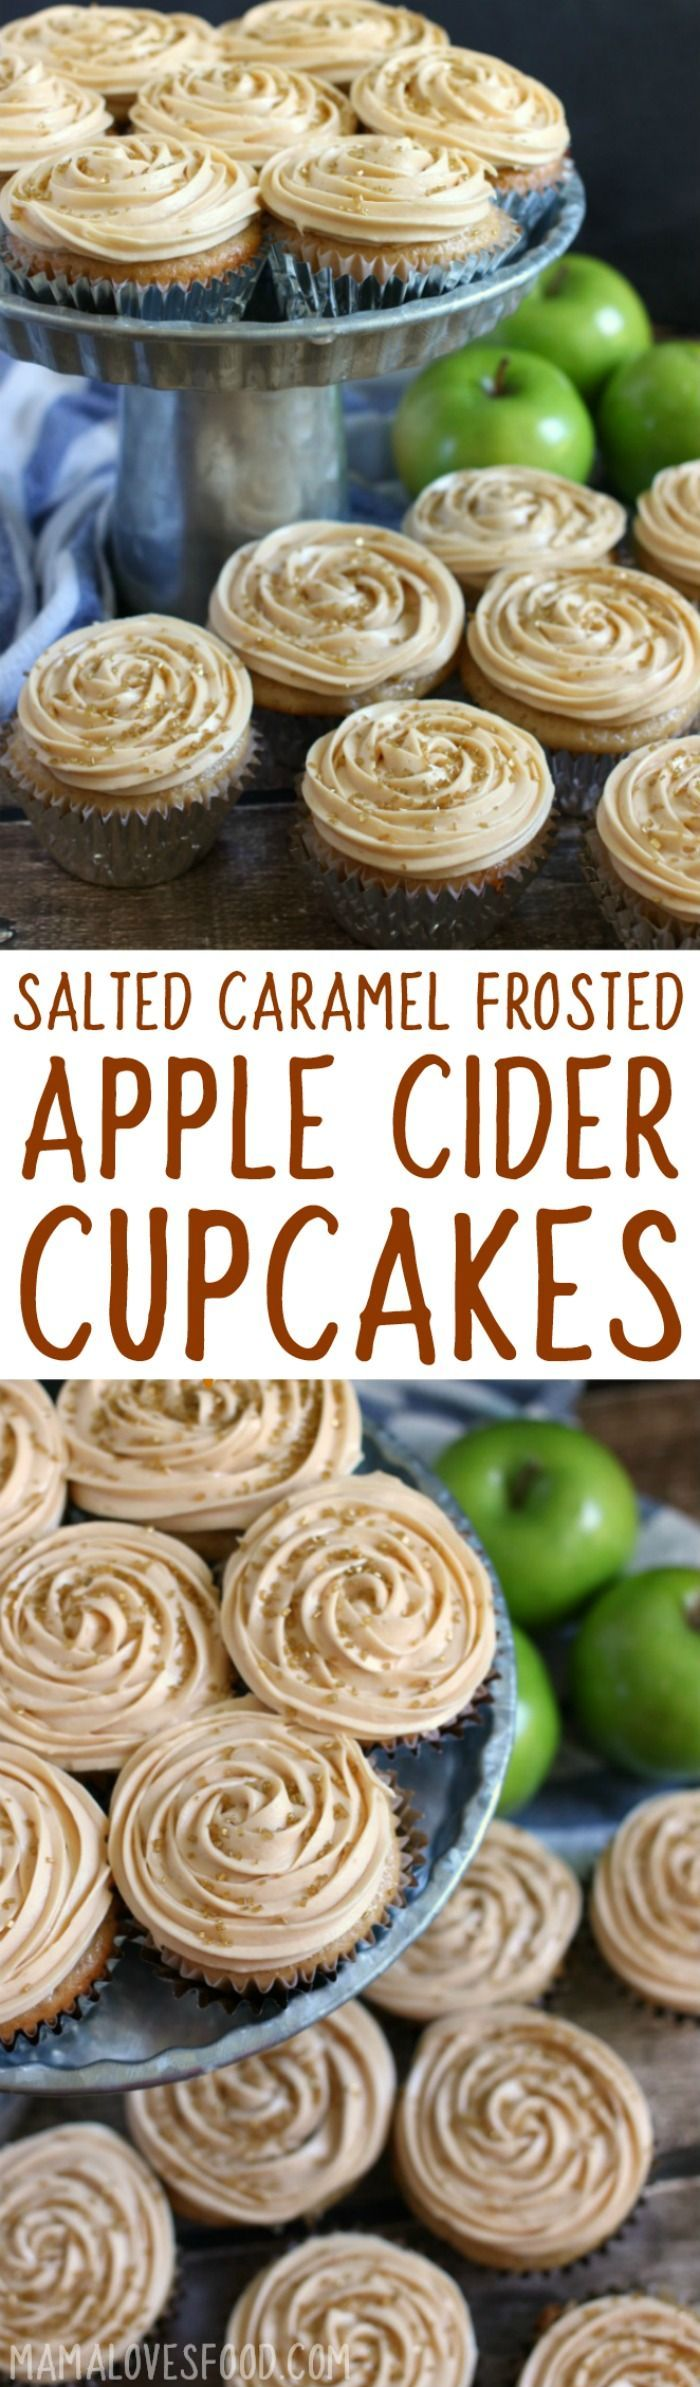 so easy! start with a box mix! Apple Cider Cupcakes with Salted Caramel Frosting is the perfect simple dessert recipe to celebrate the fall season.